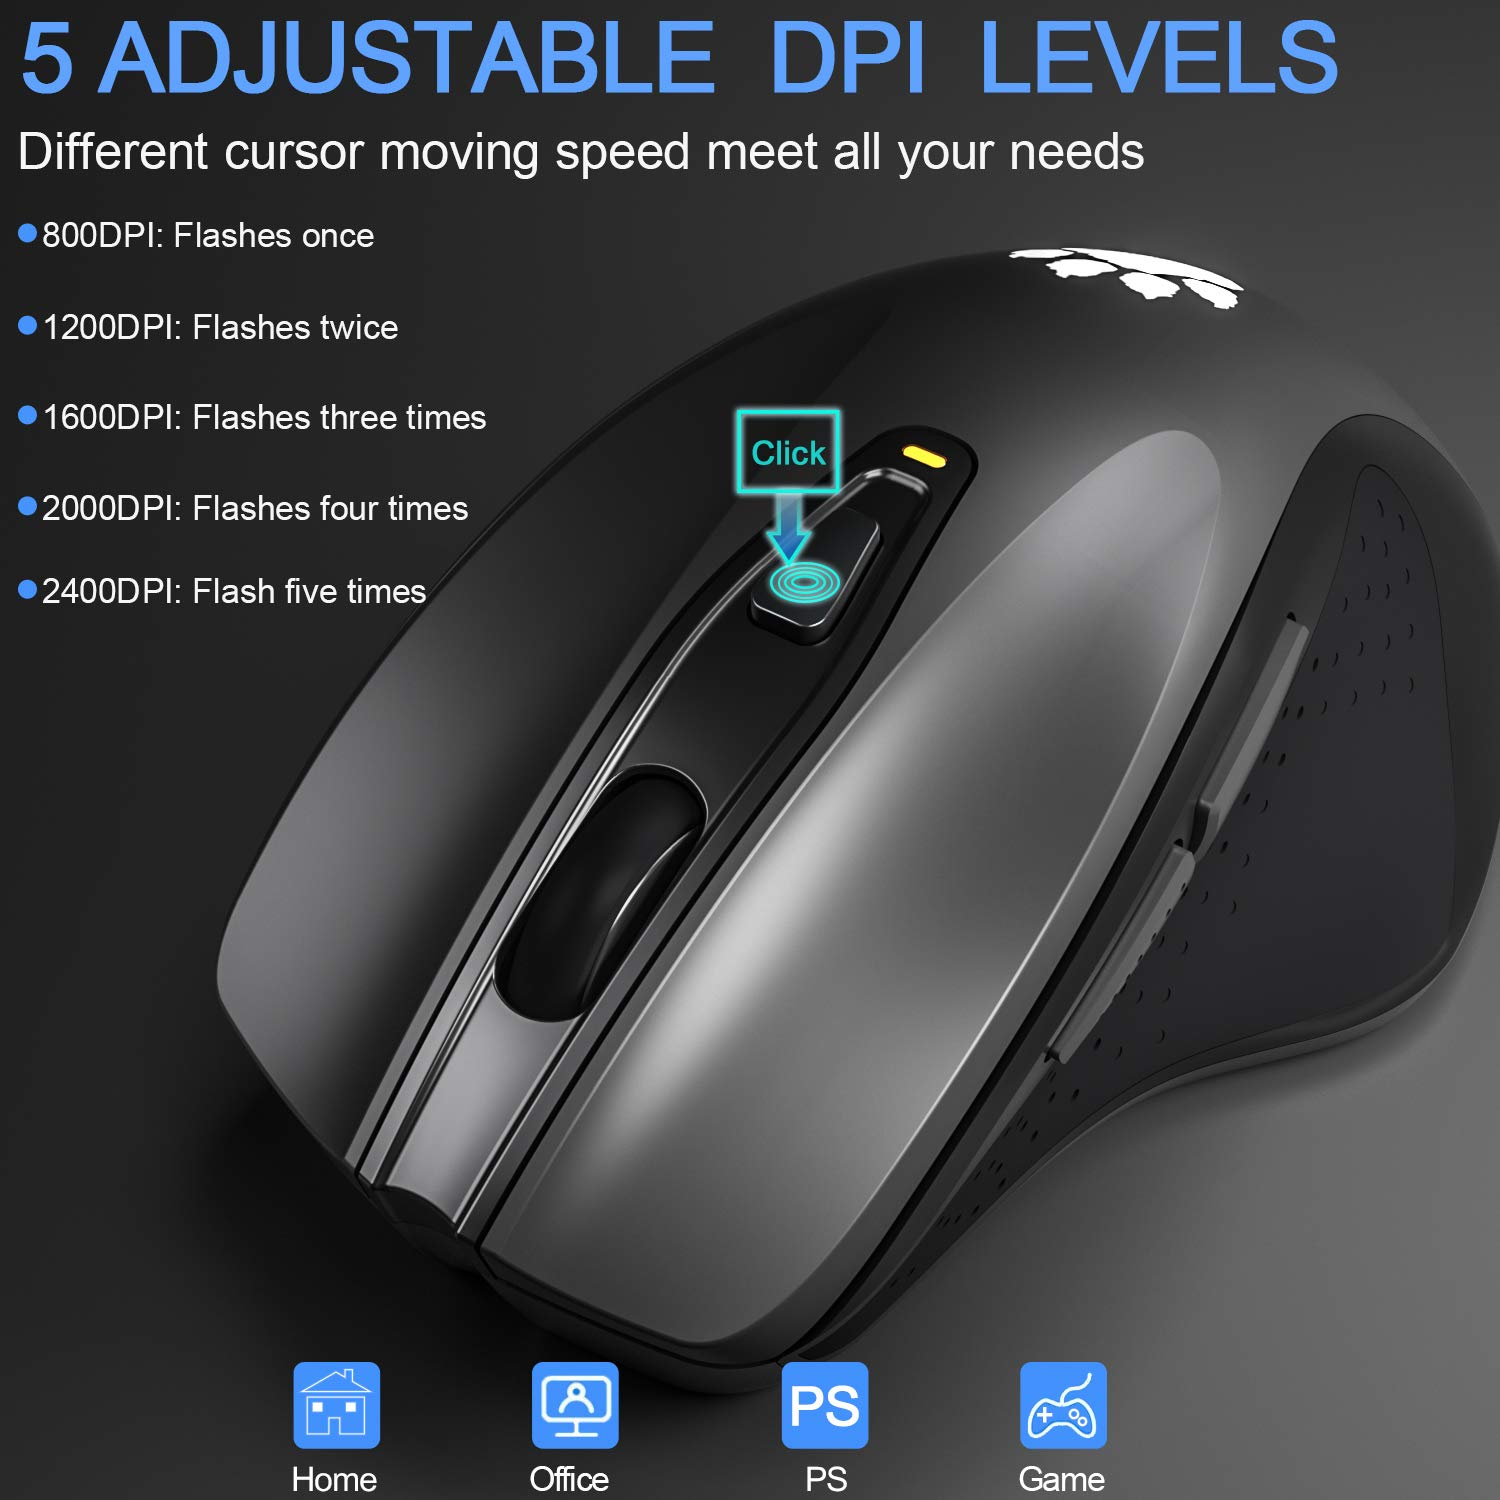 2.4G Wireless Mouse Portable Mobile Optical Mice with Nano USB Receiver 2400DPI 6 Buttons for Notebook PC Laptop Computer MacBook, Black